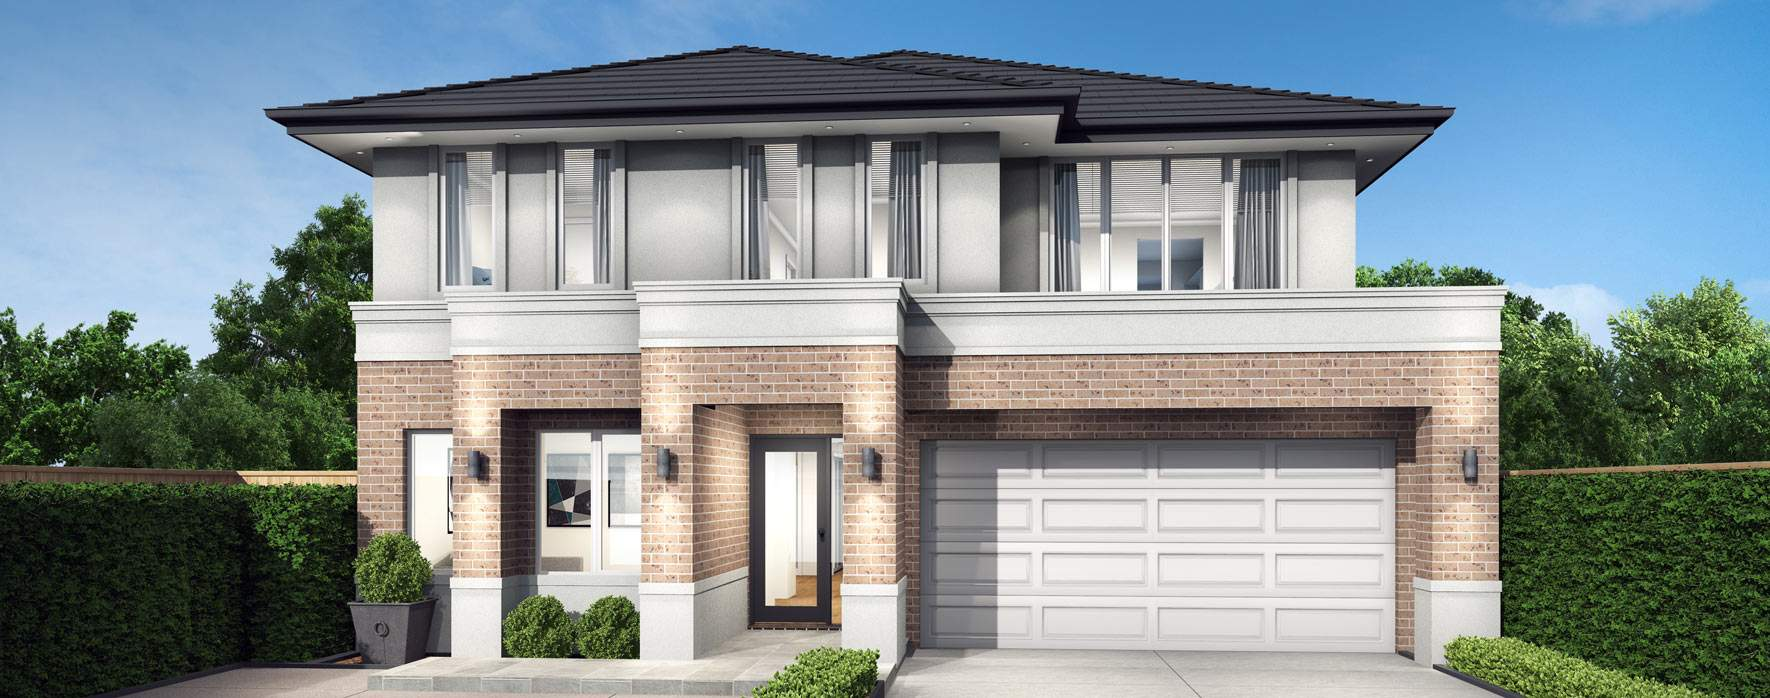 Clovelly 27-Double Storey Home Design- Essence facade